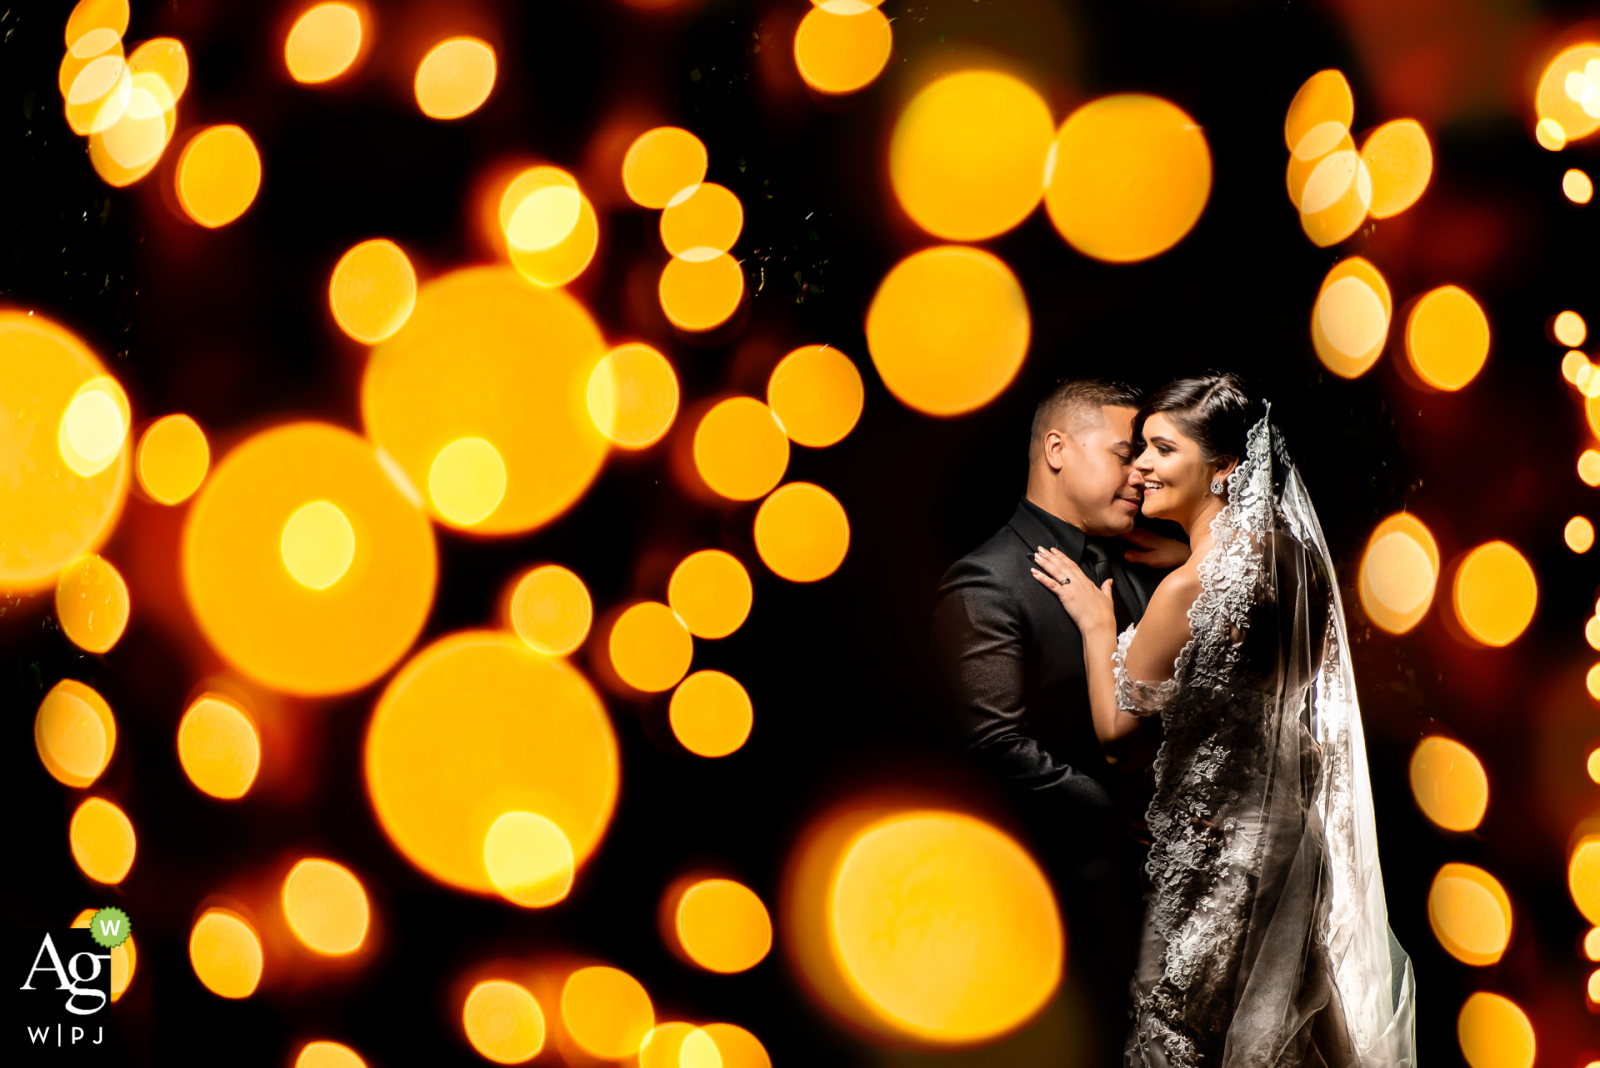 Caribbean wedding photographer at the Reception - Bride & Groom's House Subject between 2 palm trees with christmas lights for bokeh. 1 flash behind couple to pop from background and 1 main flash for subjects.